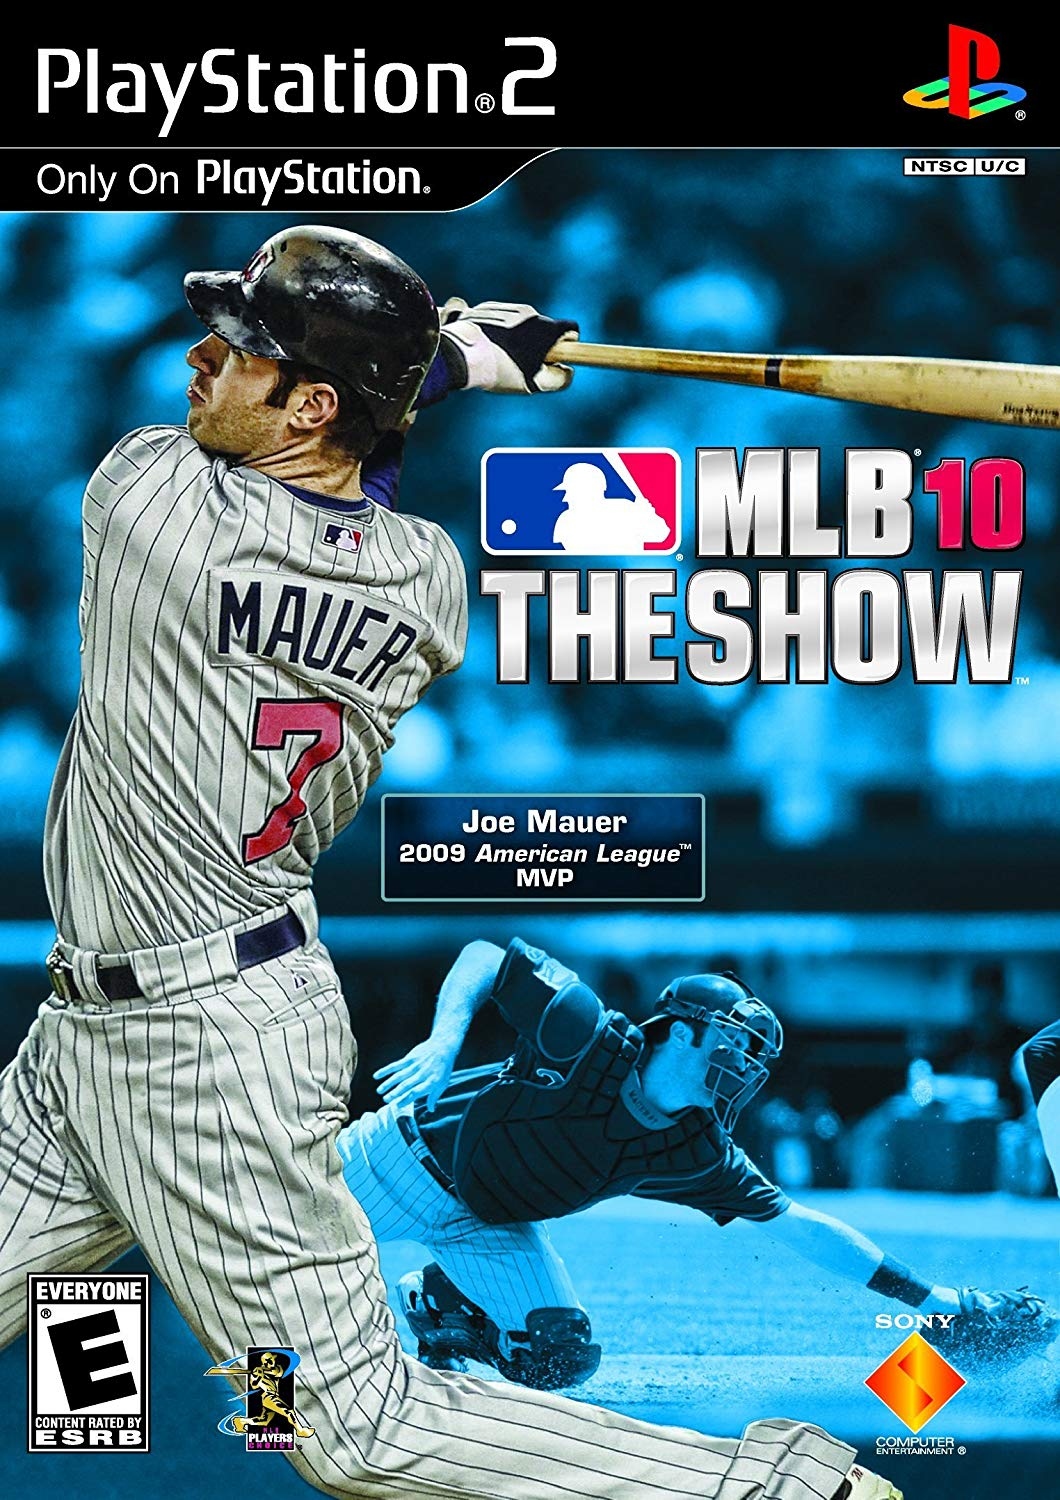 MLB 10 The Show facts